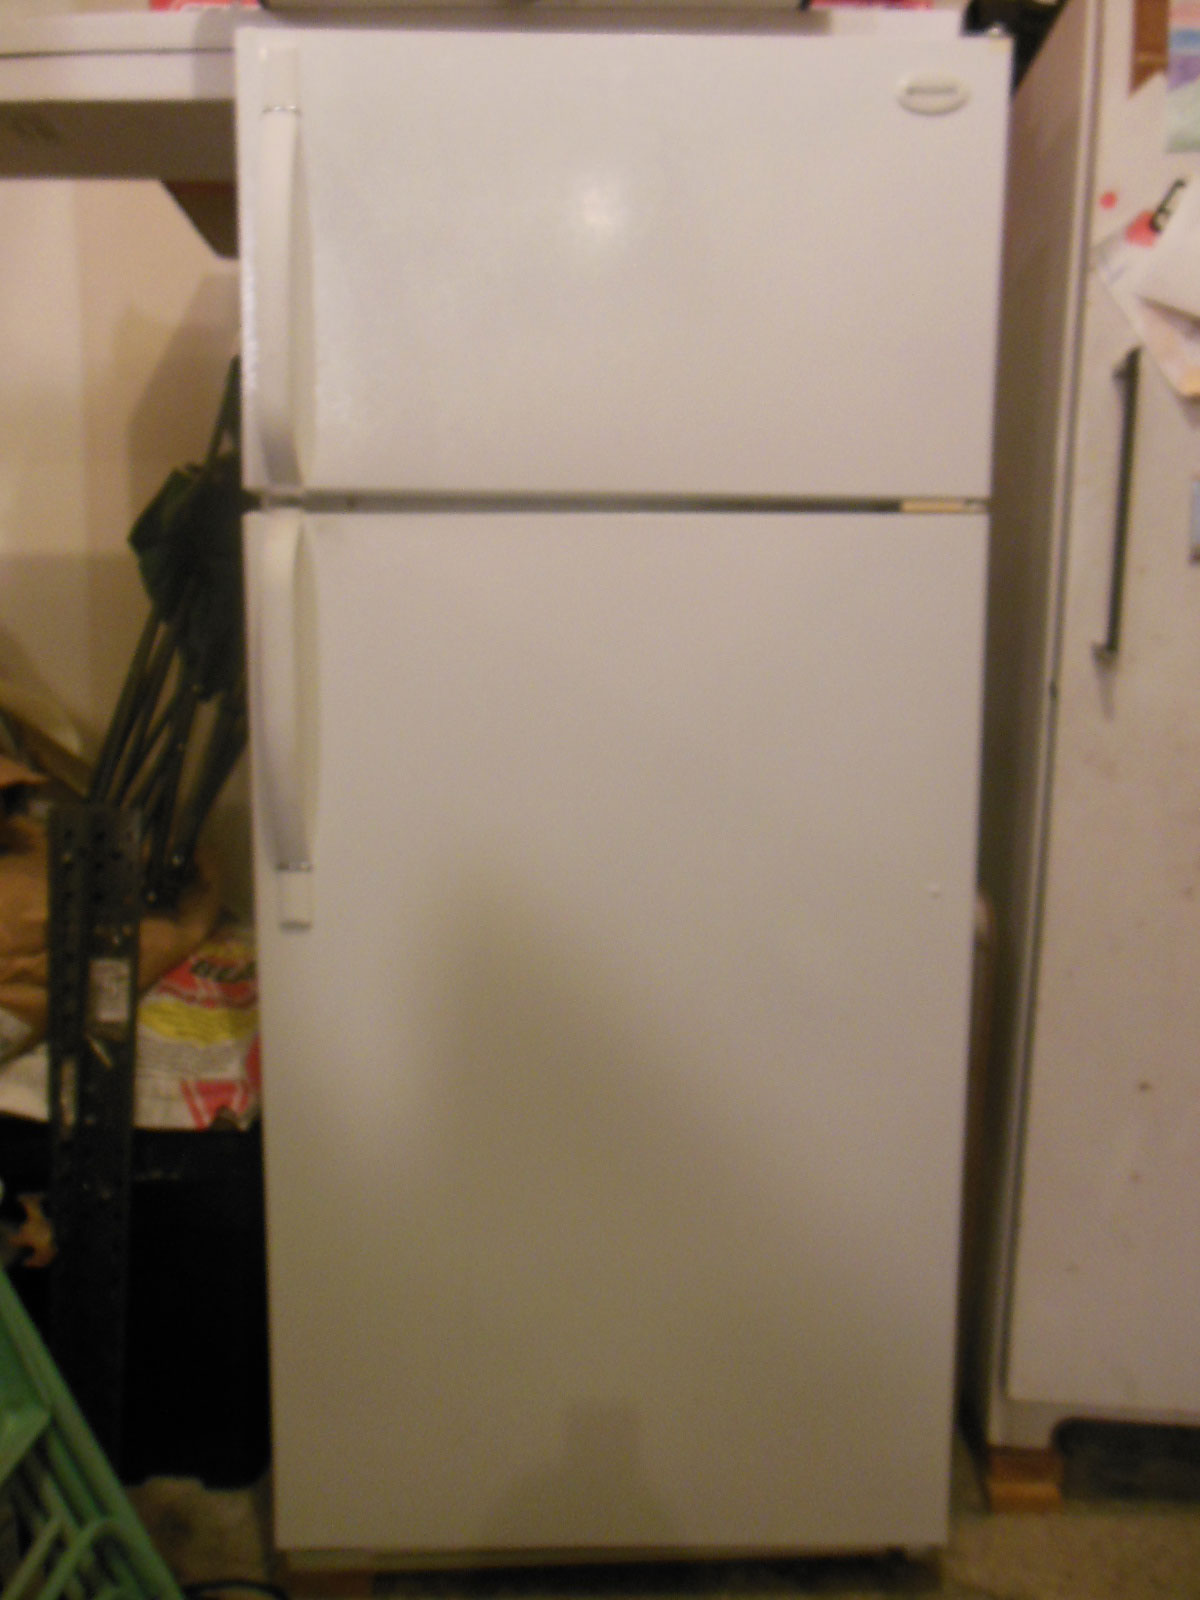 Refrigerator from a trashout in a nice house